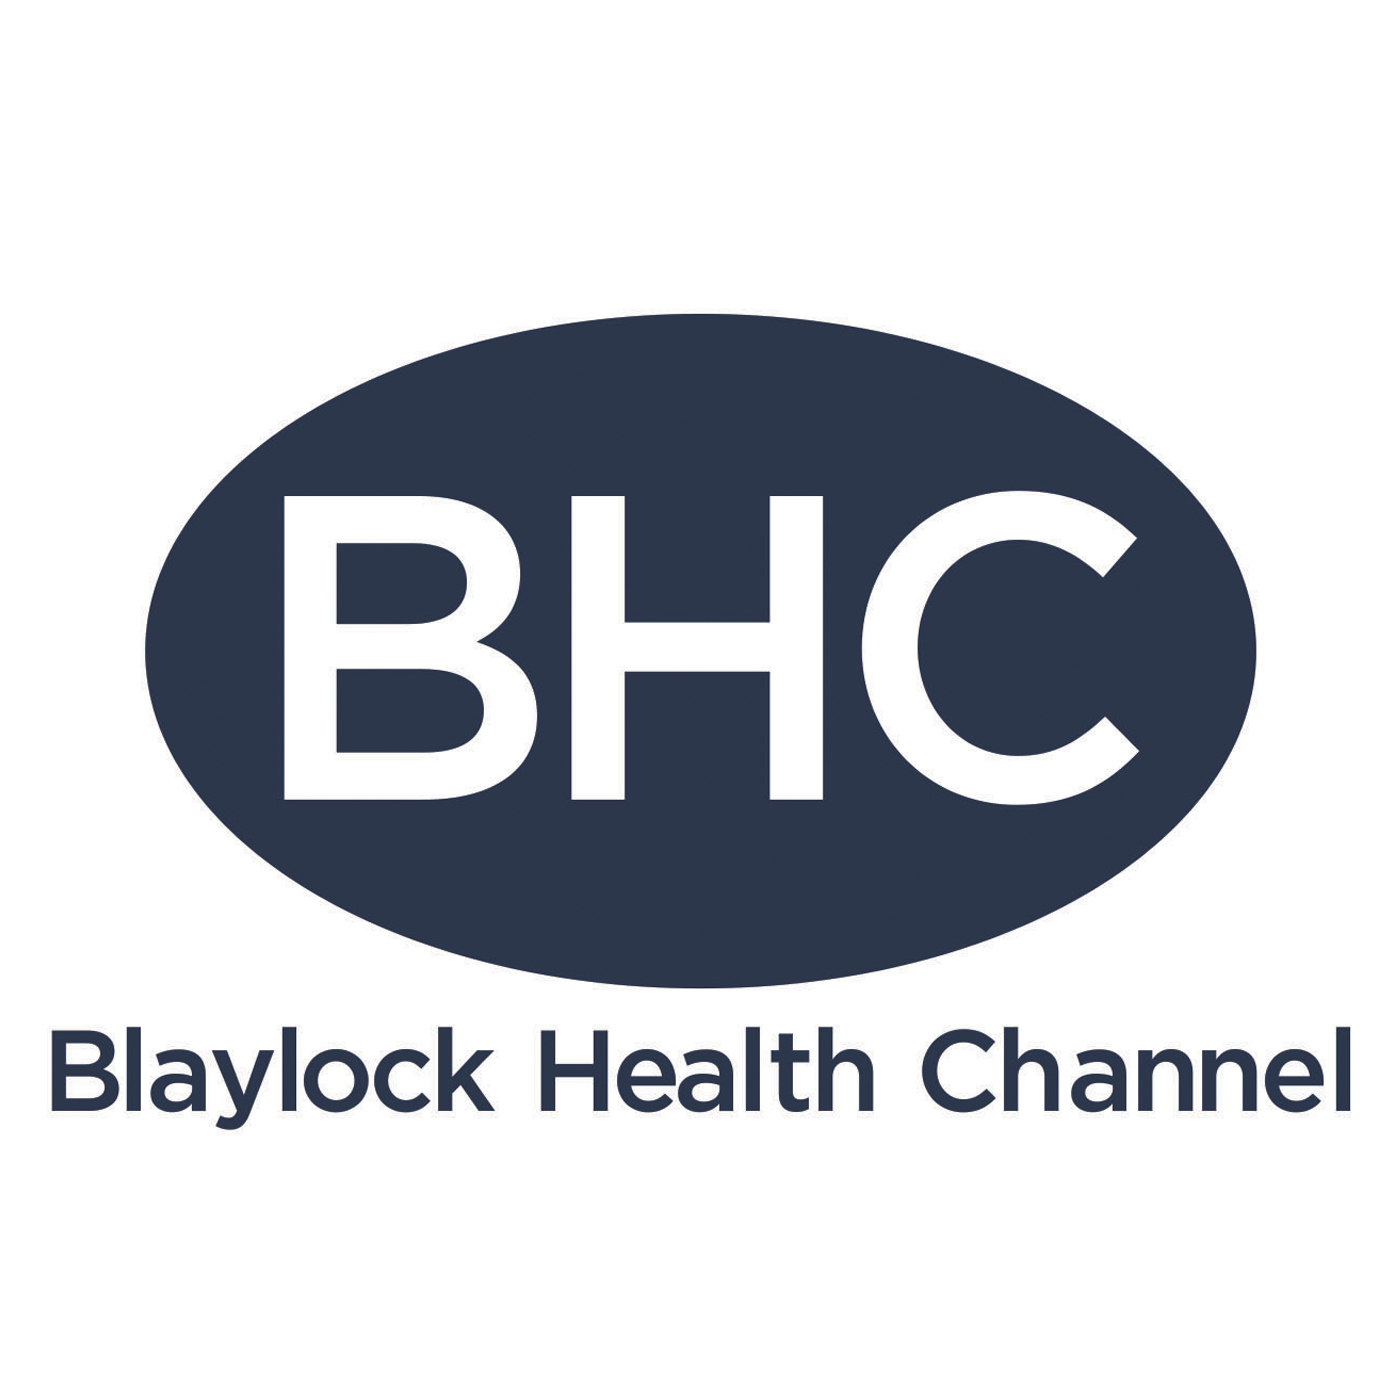 Blaylock Health Channel